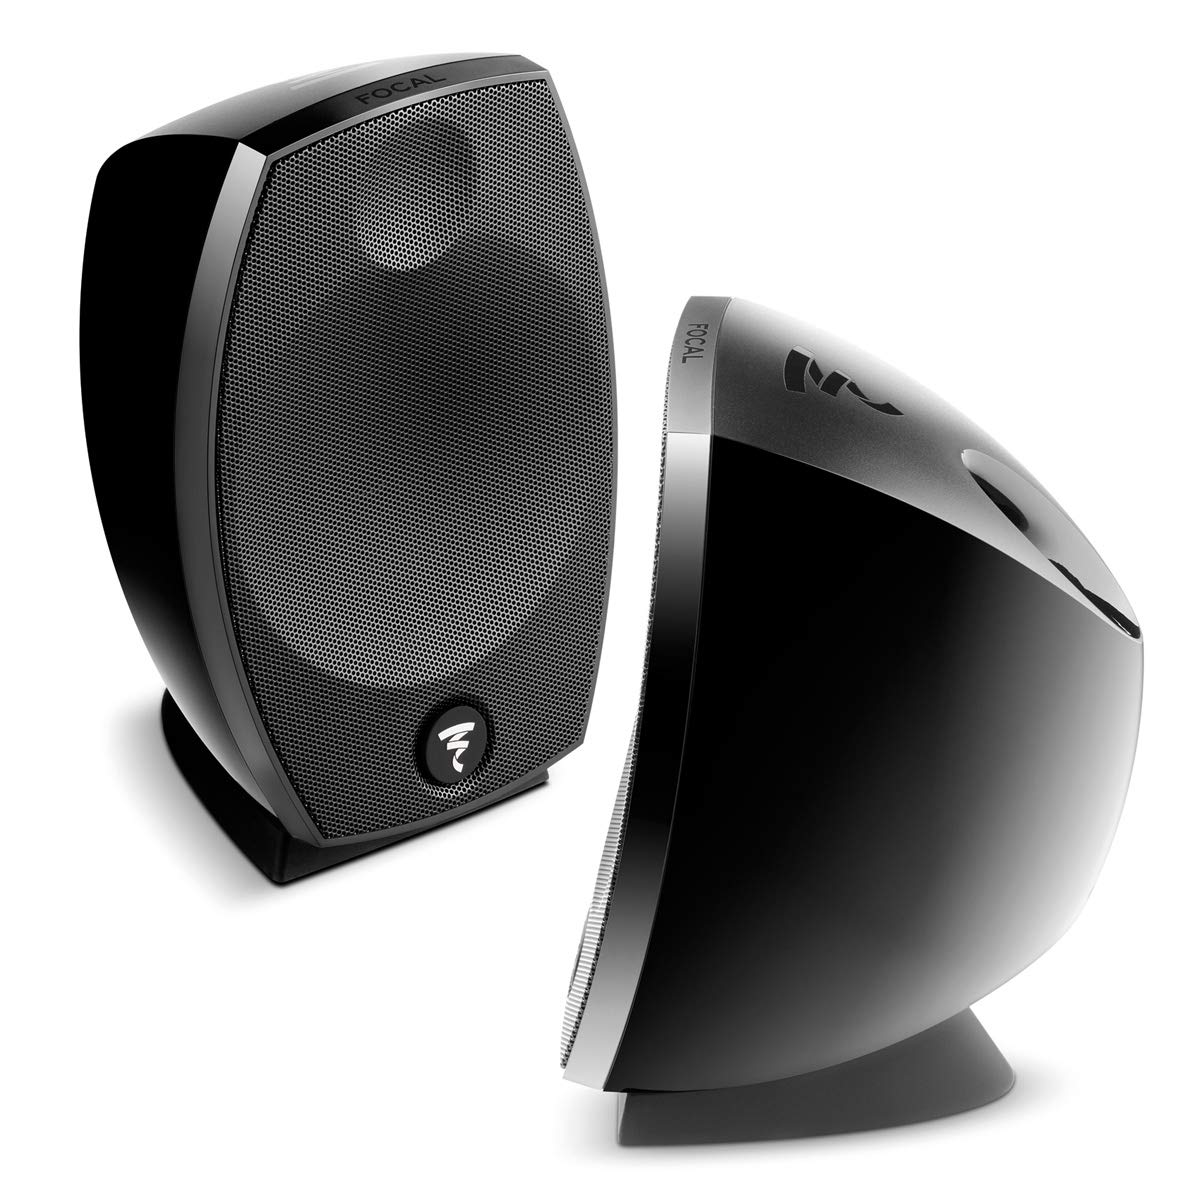 Focal SIB Evo 2.0 2-Way Bass-Reflex Satellite Loudspeakers - Pair (Black)